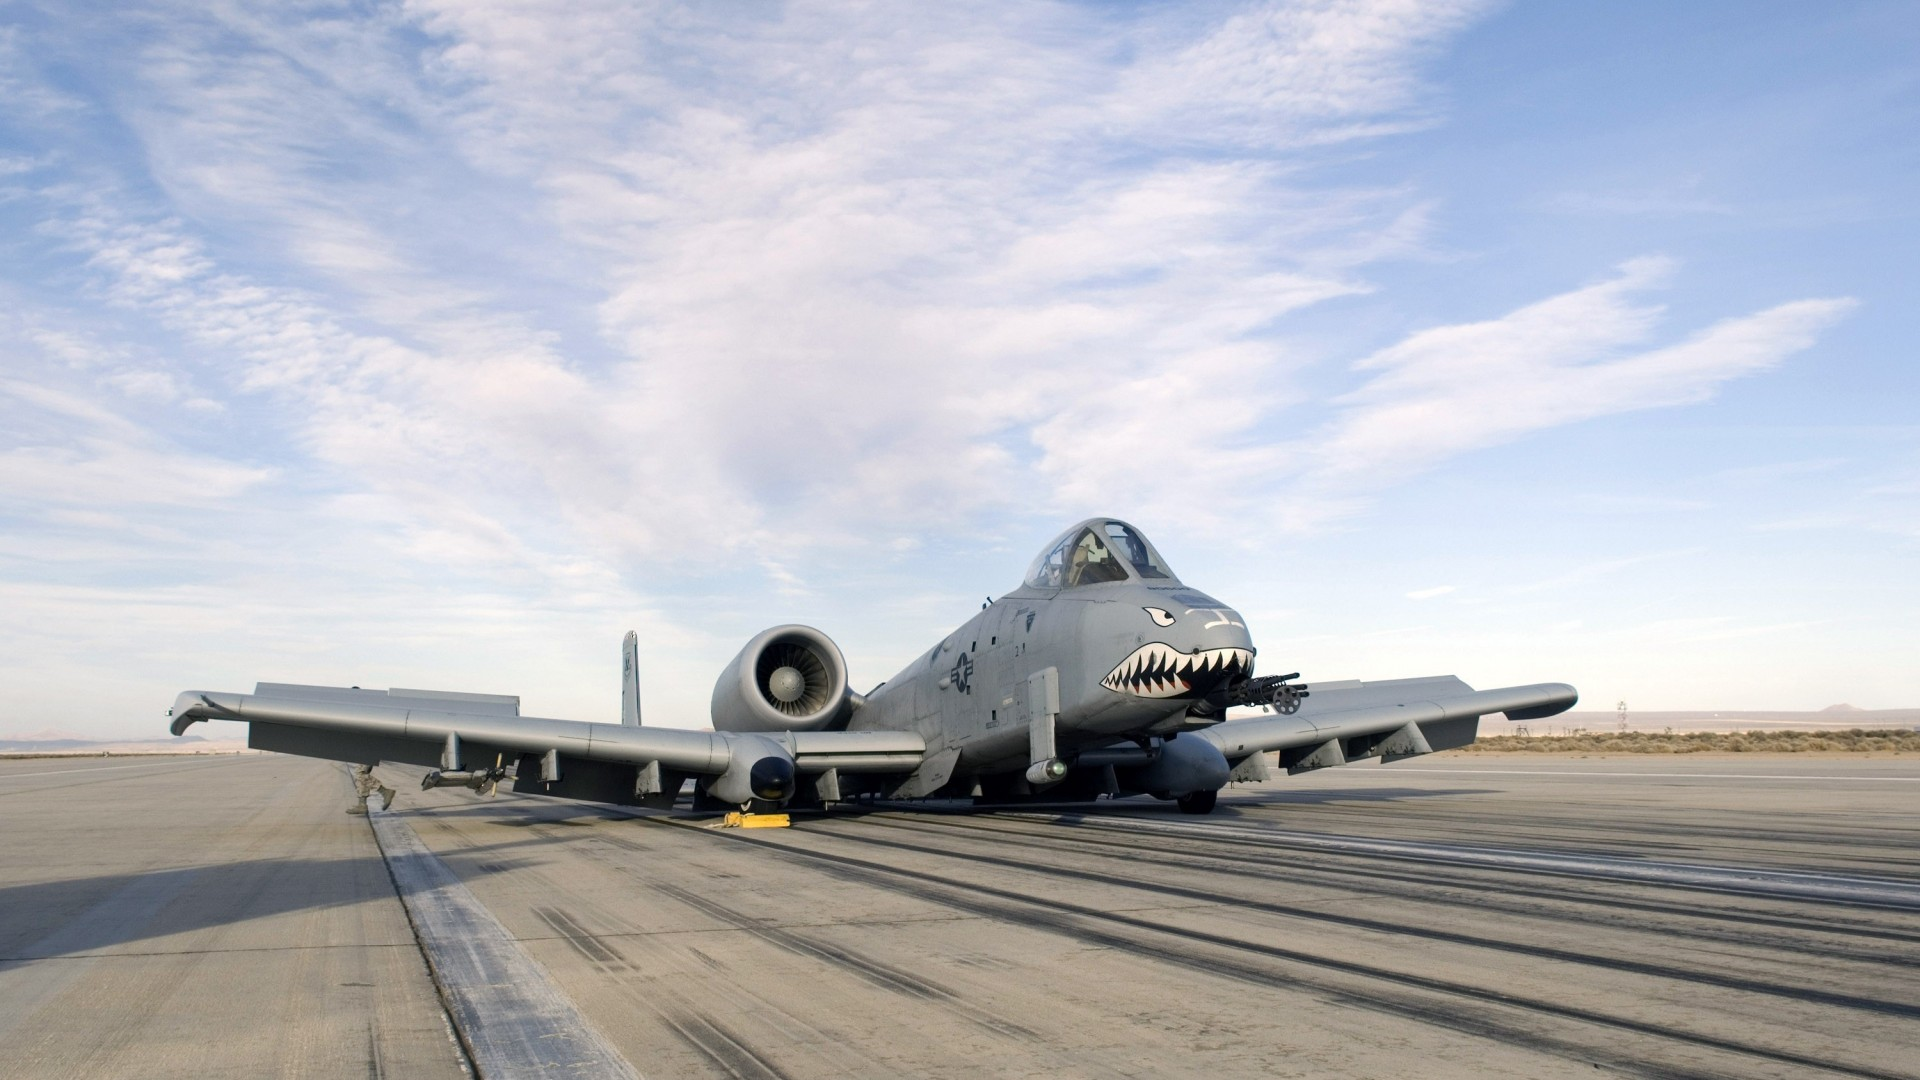 mq 9 reaper crash with 20 Photos Insolites Davions Militaires Marcher Beaucoup Bien on The Predator Drone Is Taking Out Al Qaeda One Terrorist At A Time 2012 9 besides C17 Merlin also Bagram Jumpo Crash likewise Drone Uav White House Crash also Mayday When Drones Crash 17949.